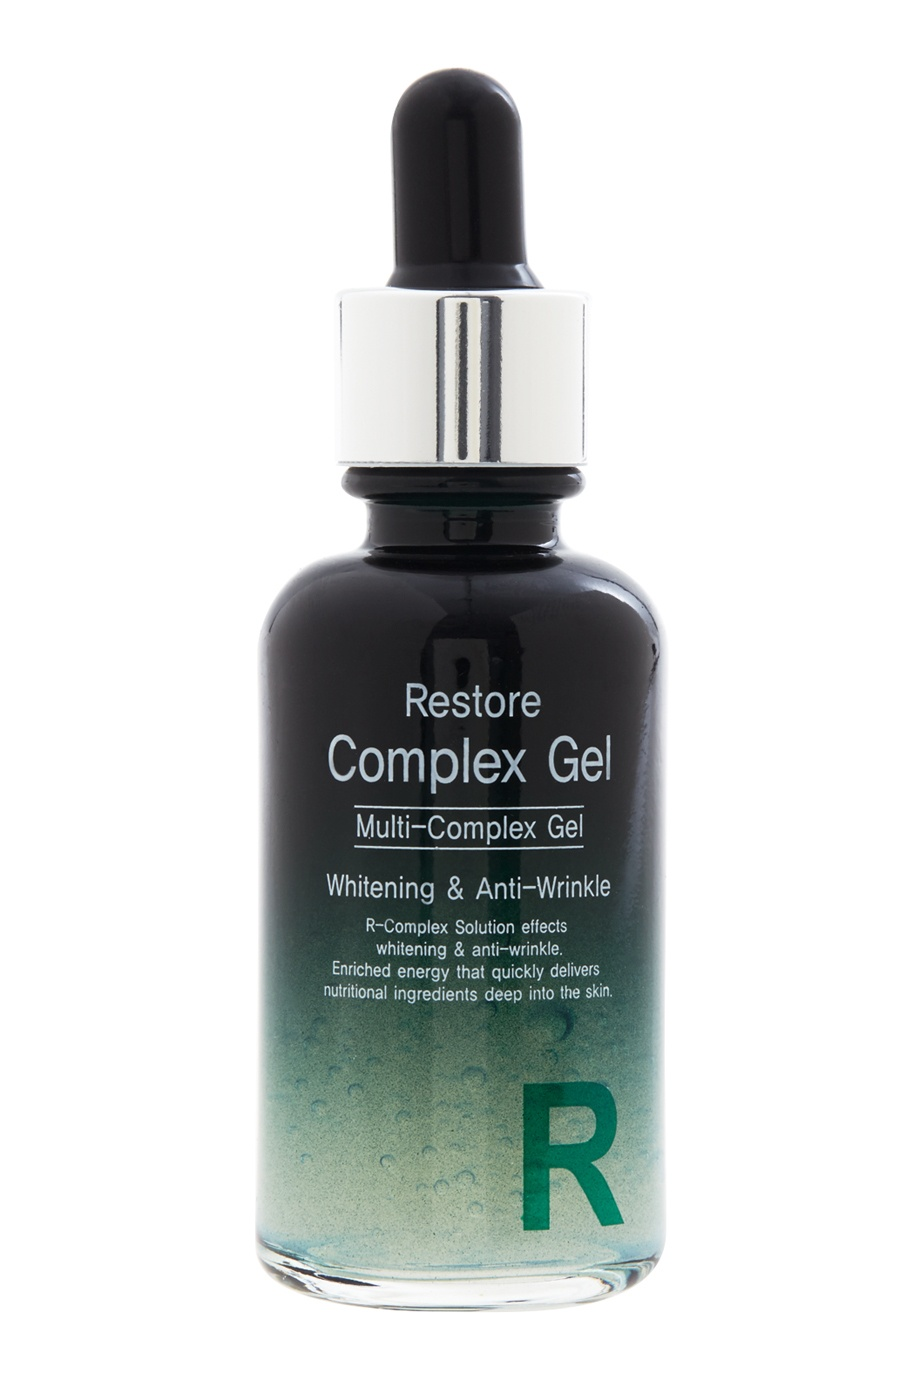 Восстанавливающая сыворотка для лица Restore Complex Gel, 30ml Sferangs (фото)